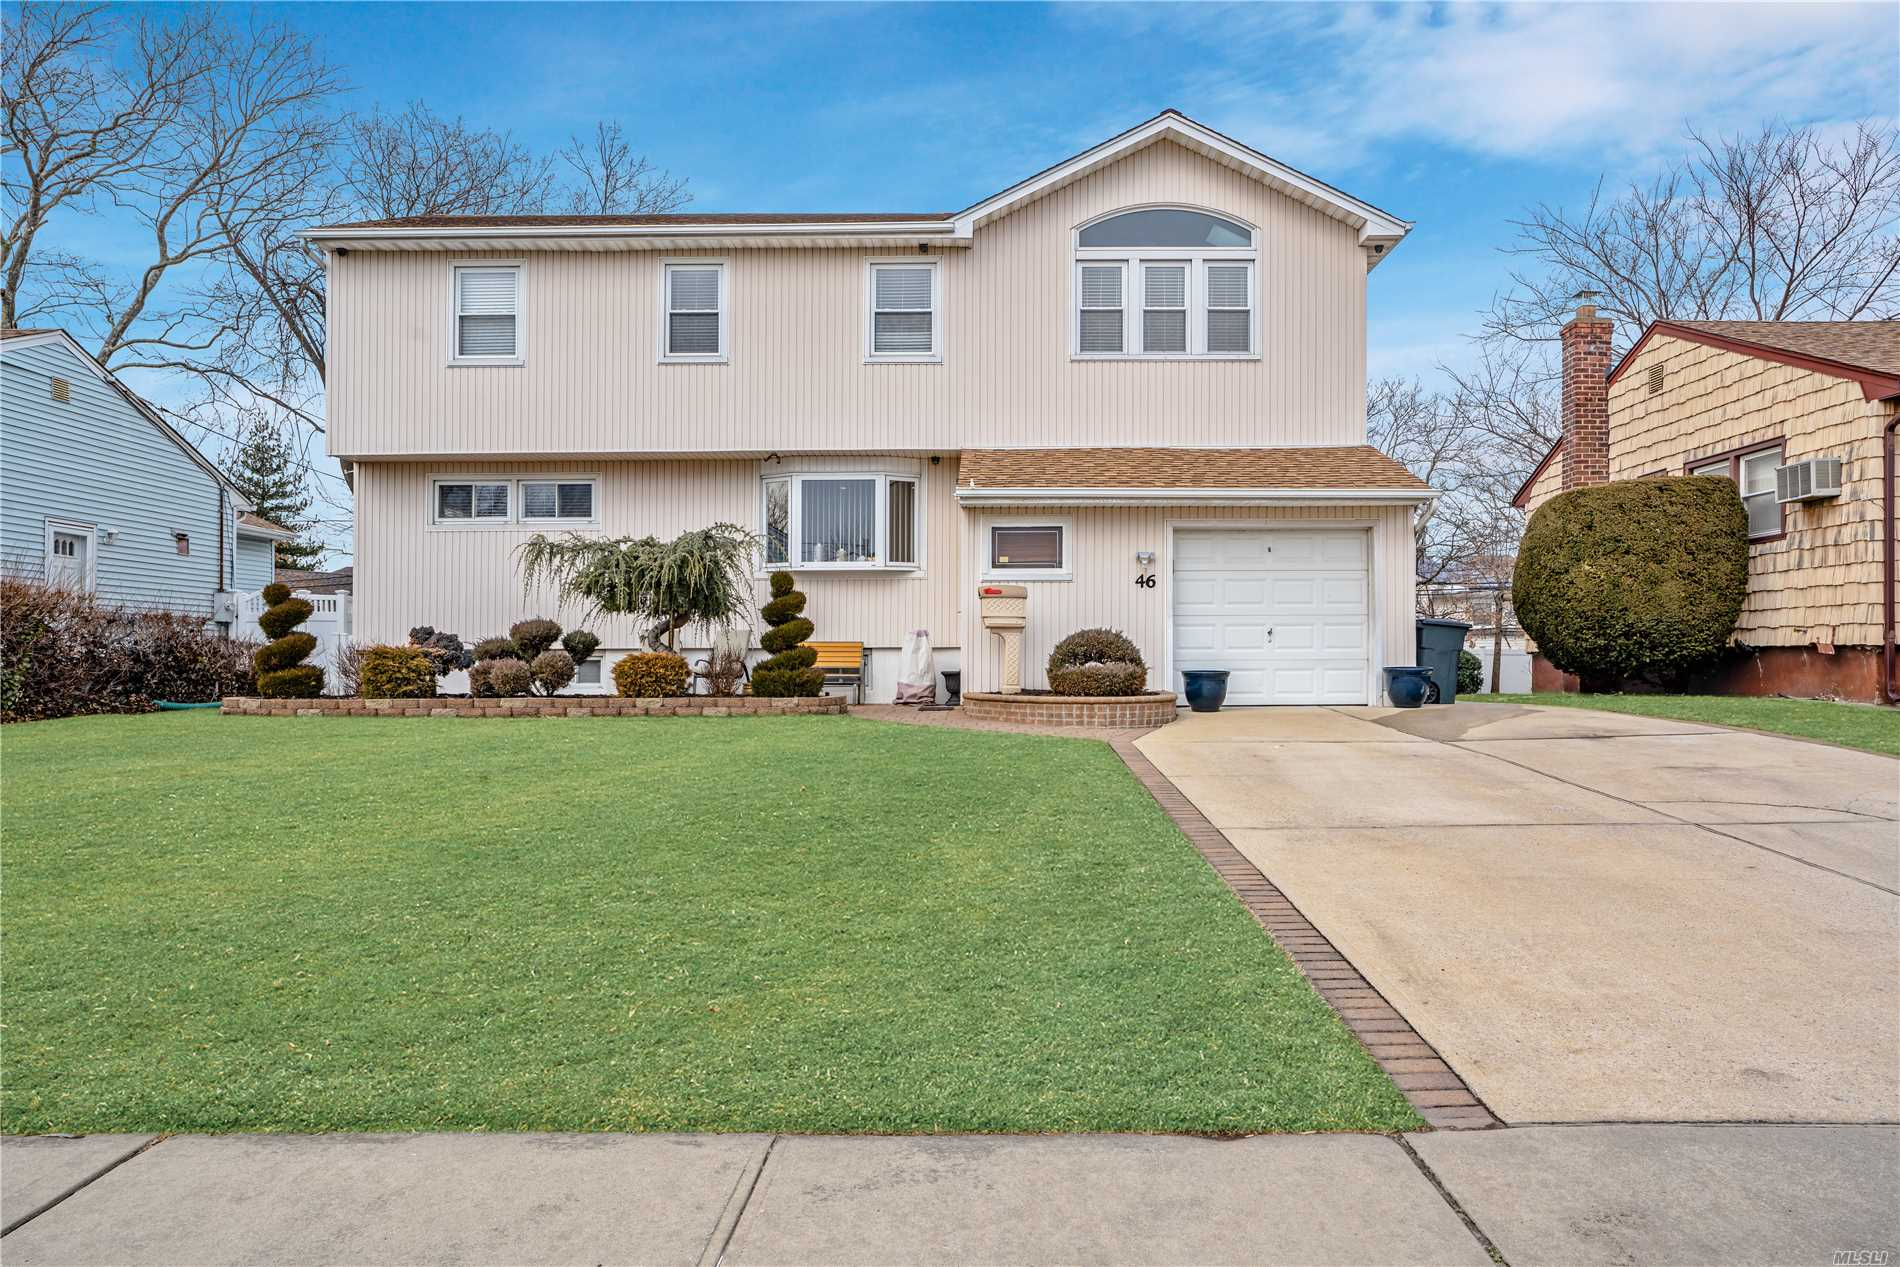 Living is easy in this impressive,  spacious residence with cathedral mother daughter suite. This triple mint stunner has been meticulously maintained and upgraded throughout. Spacious bedrooms, generously-sized living/dining area with stunning family room graced by fireplace and skylights. California closets throughout. Built in sound system, hard wired state-of-the-art security and sprinkler system. Full finished basement with laundry room and pantry. Too many upgrades to name!!!